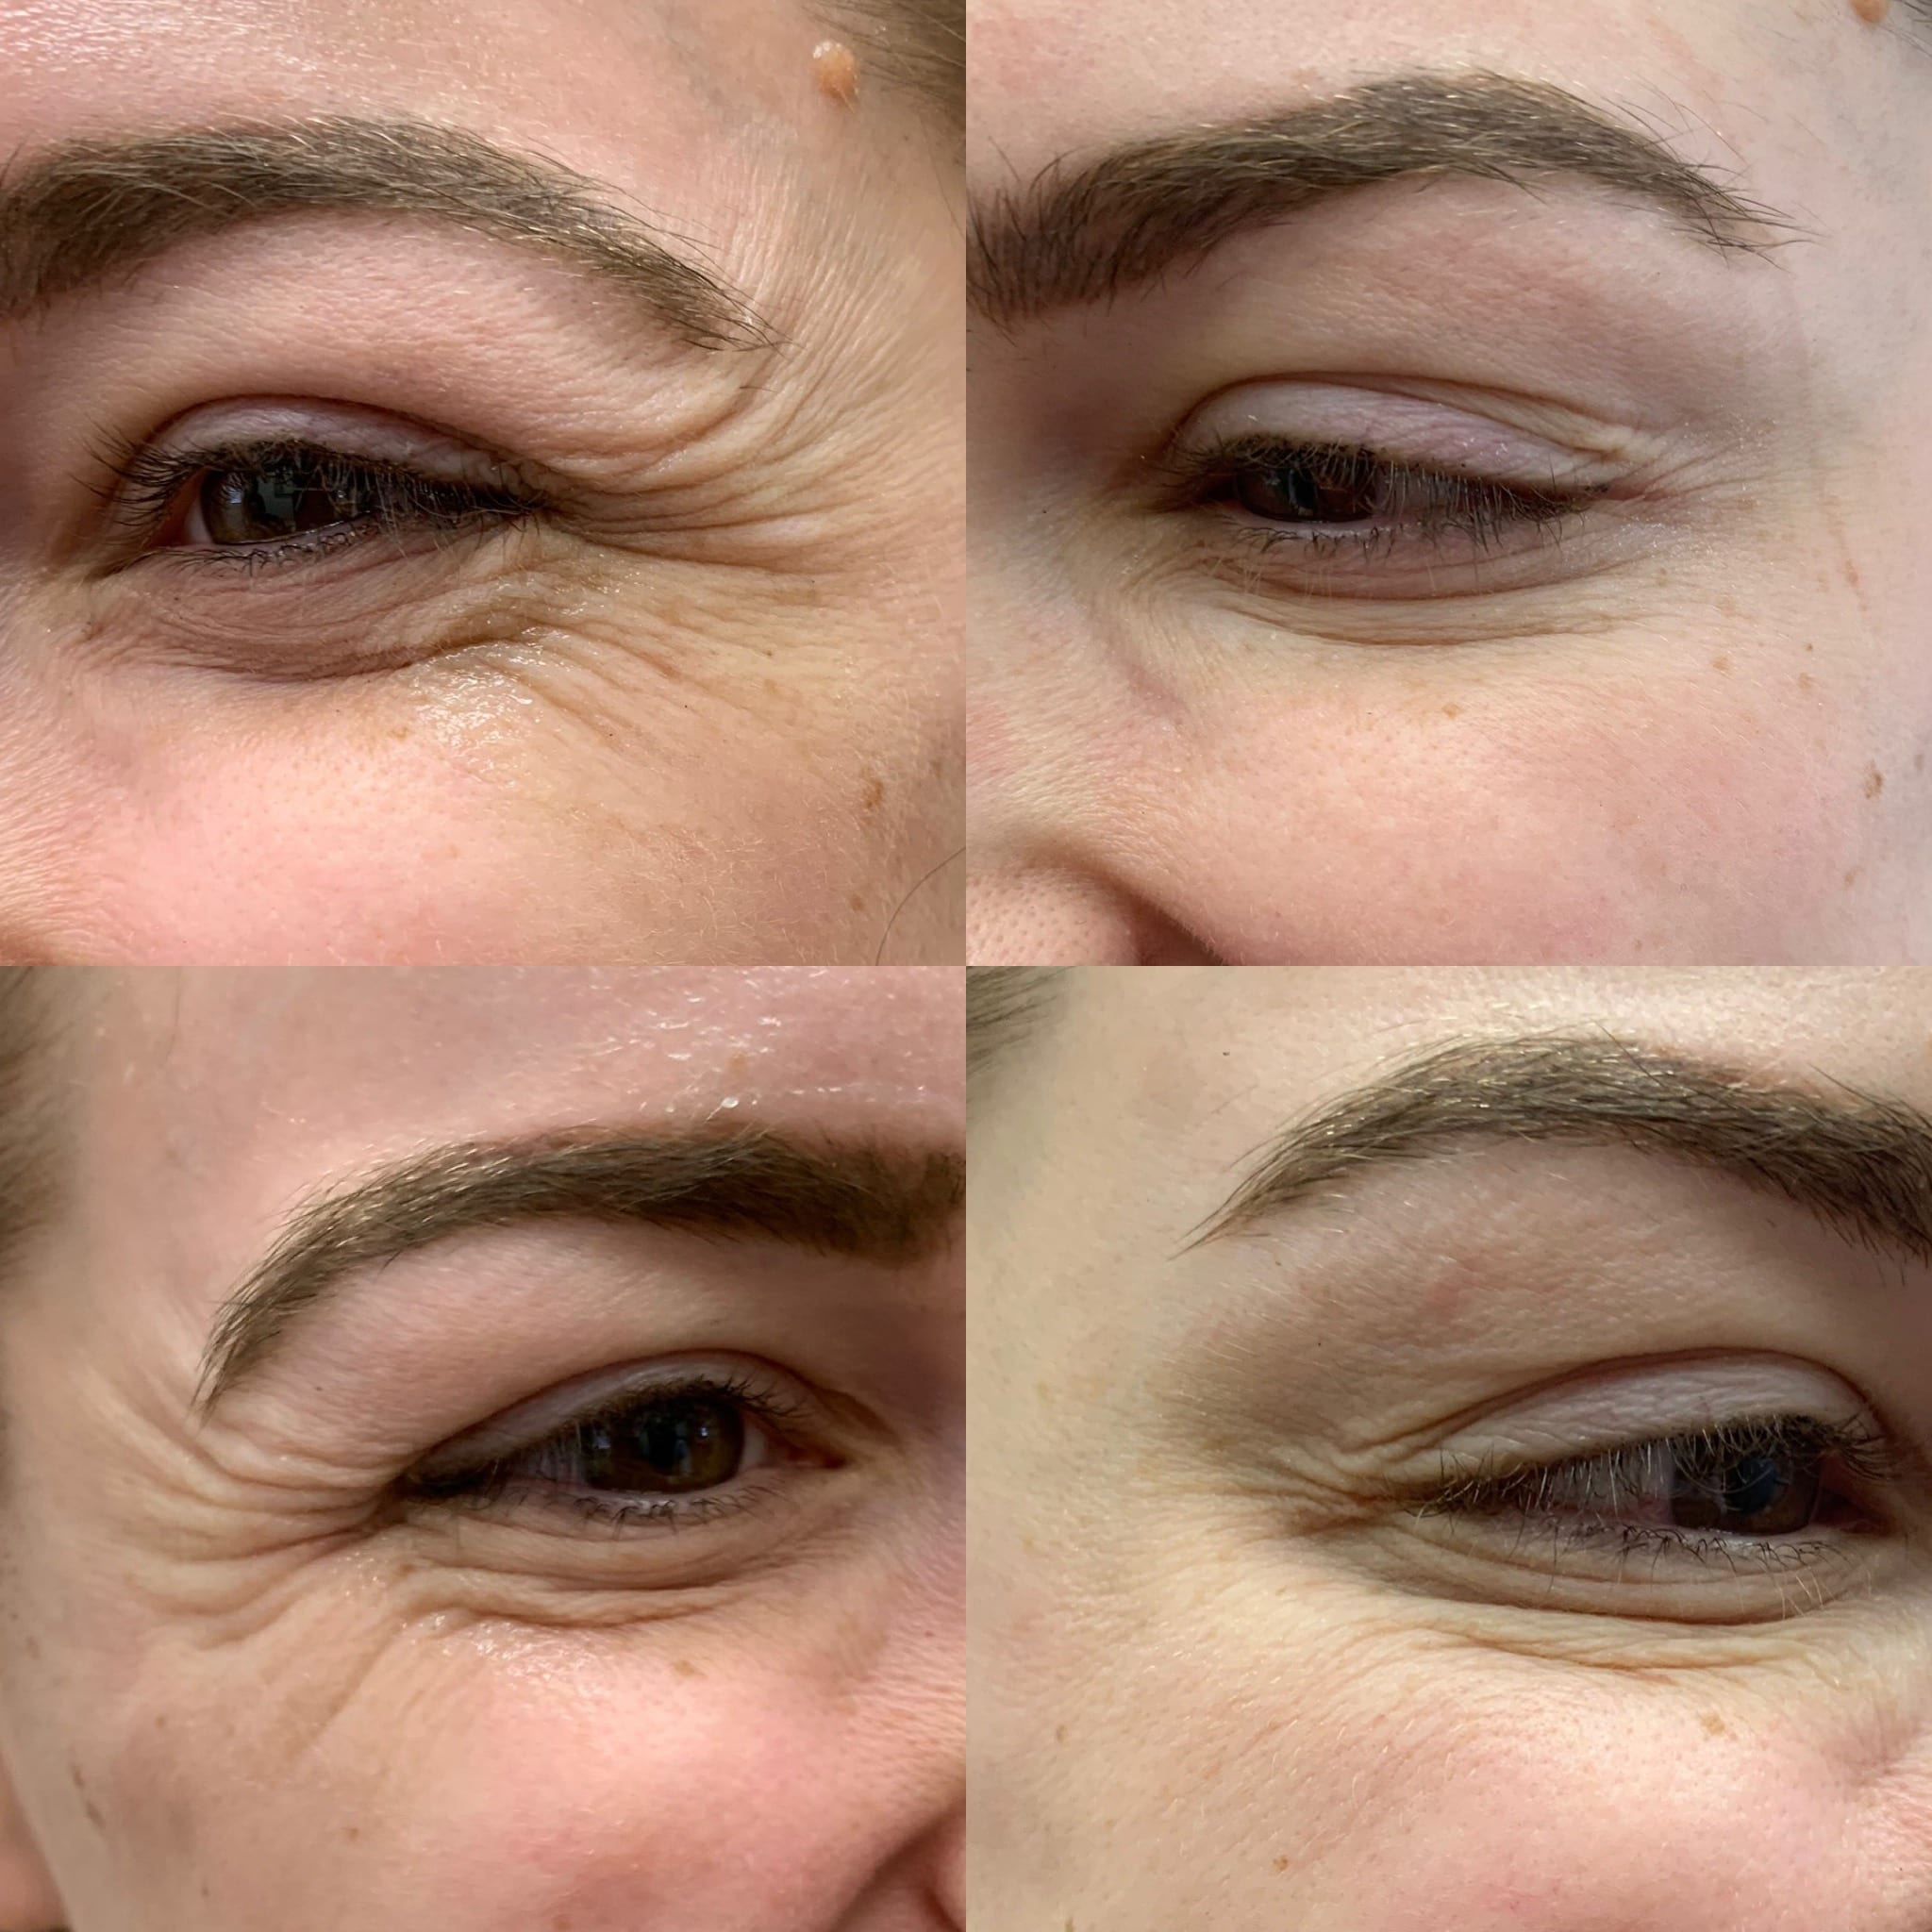 29 y/o Caucasian F 1 week after receiving 24 units of botox to her crow's feet and brow lift.